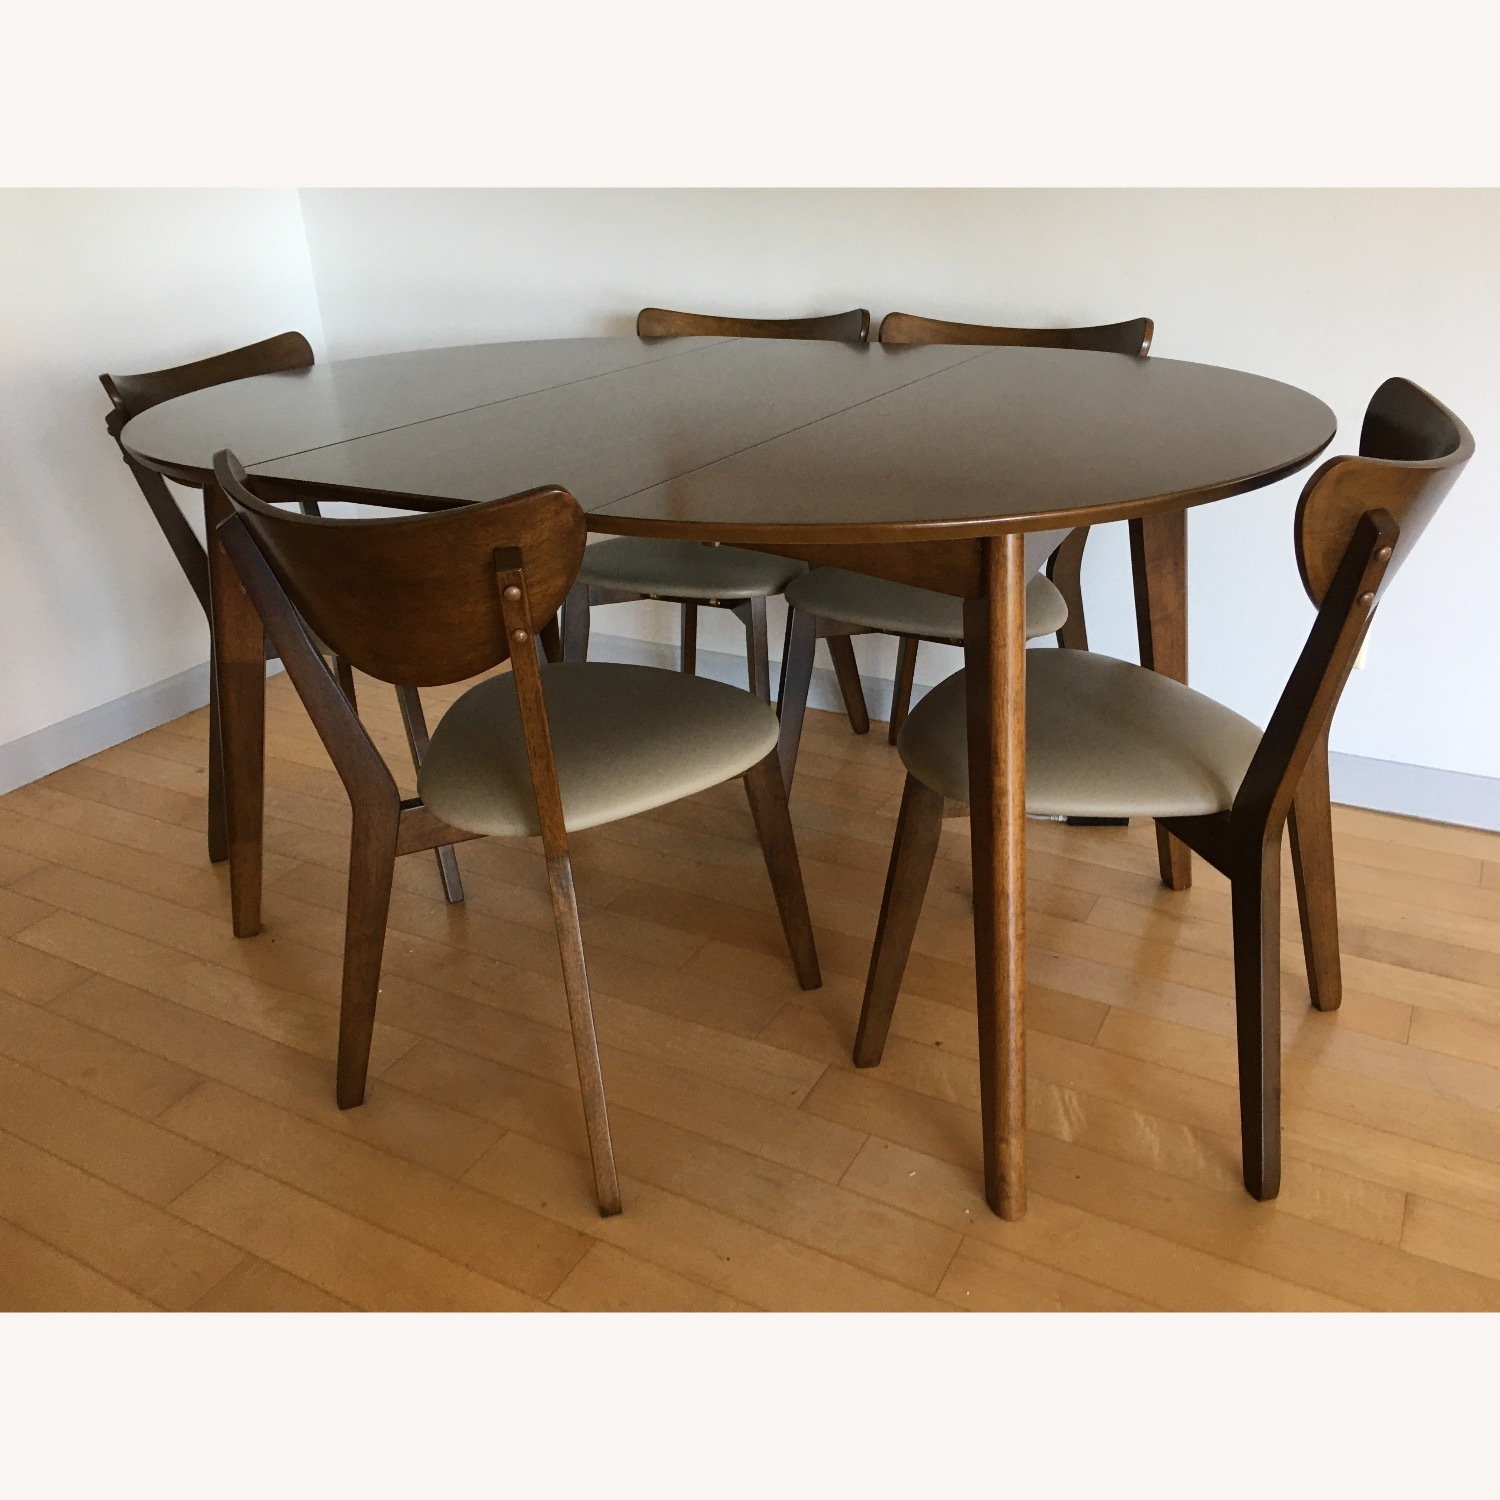 Mid-Century Modern Walnut Dining Table and Chairs - image-2